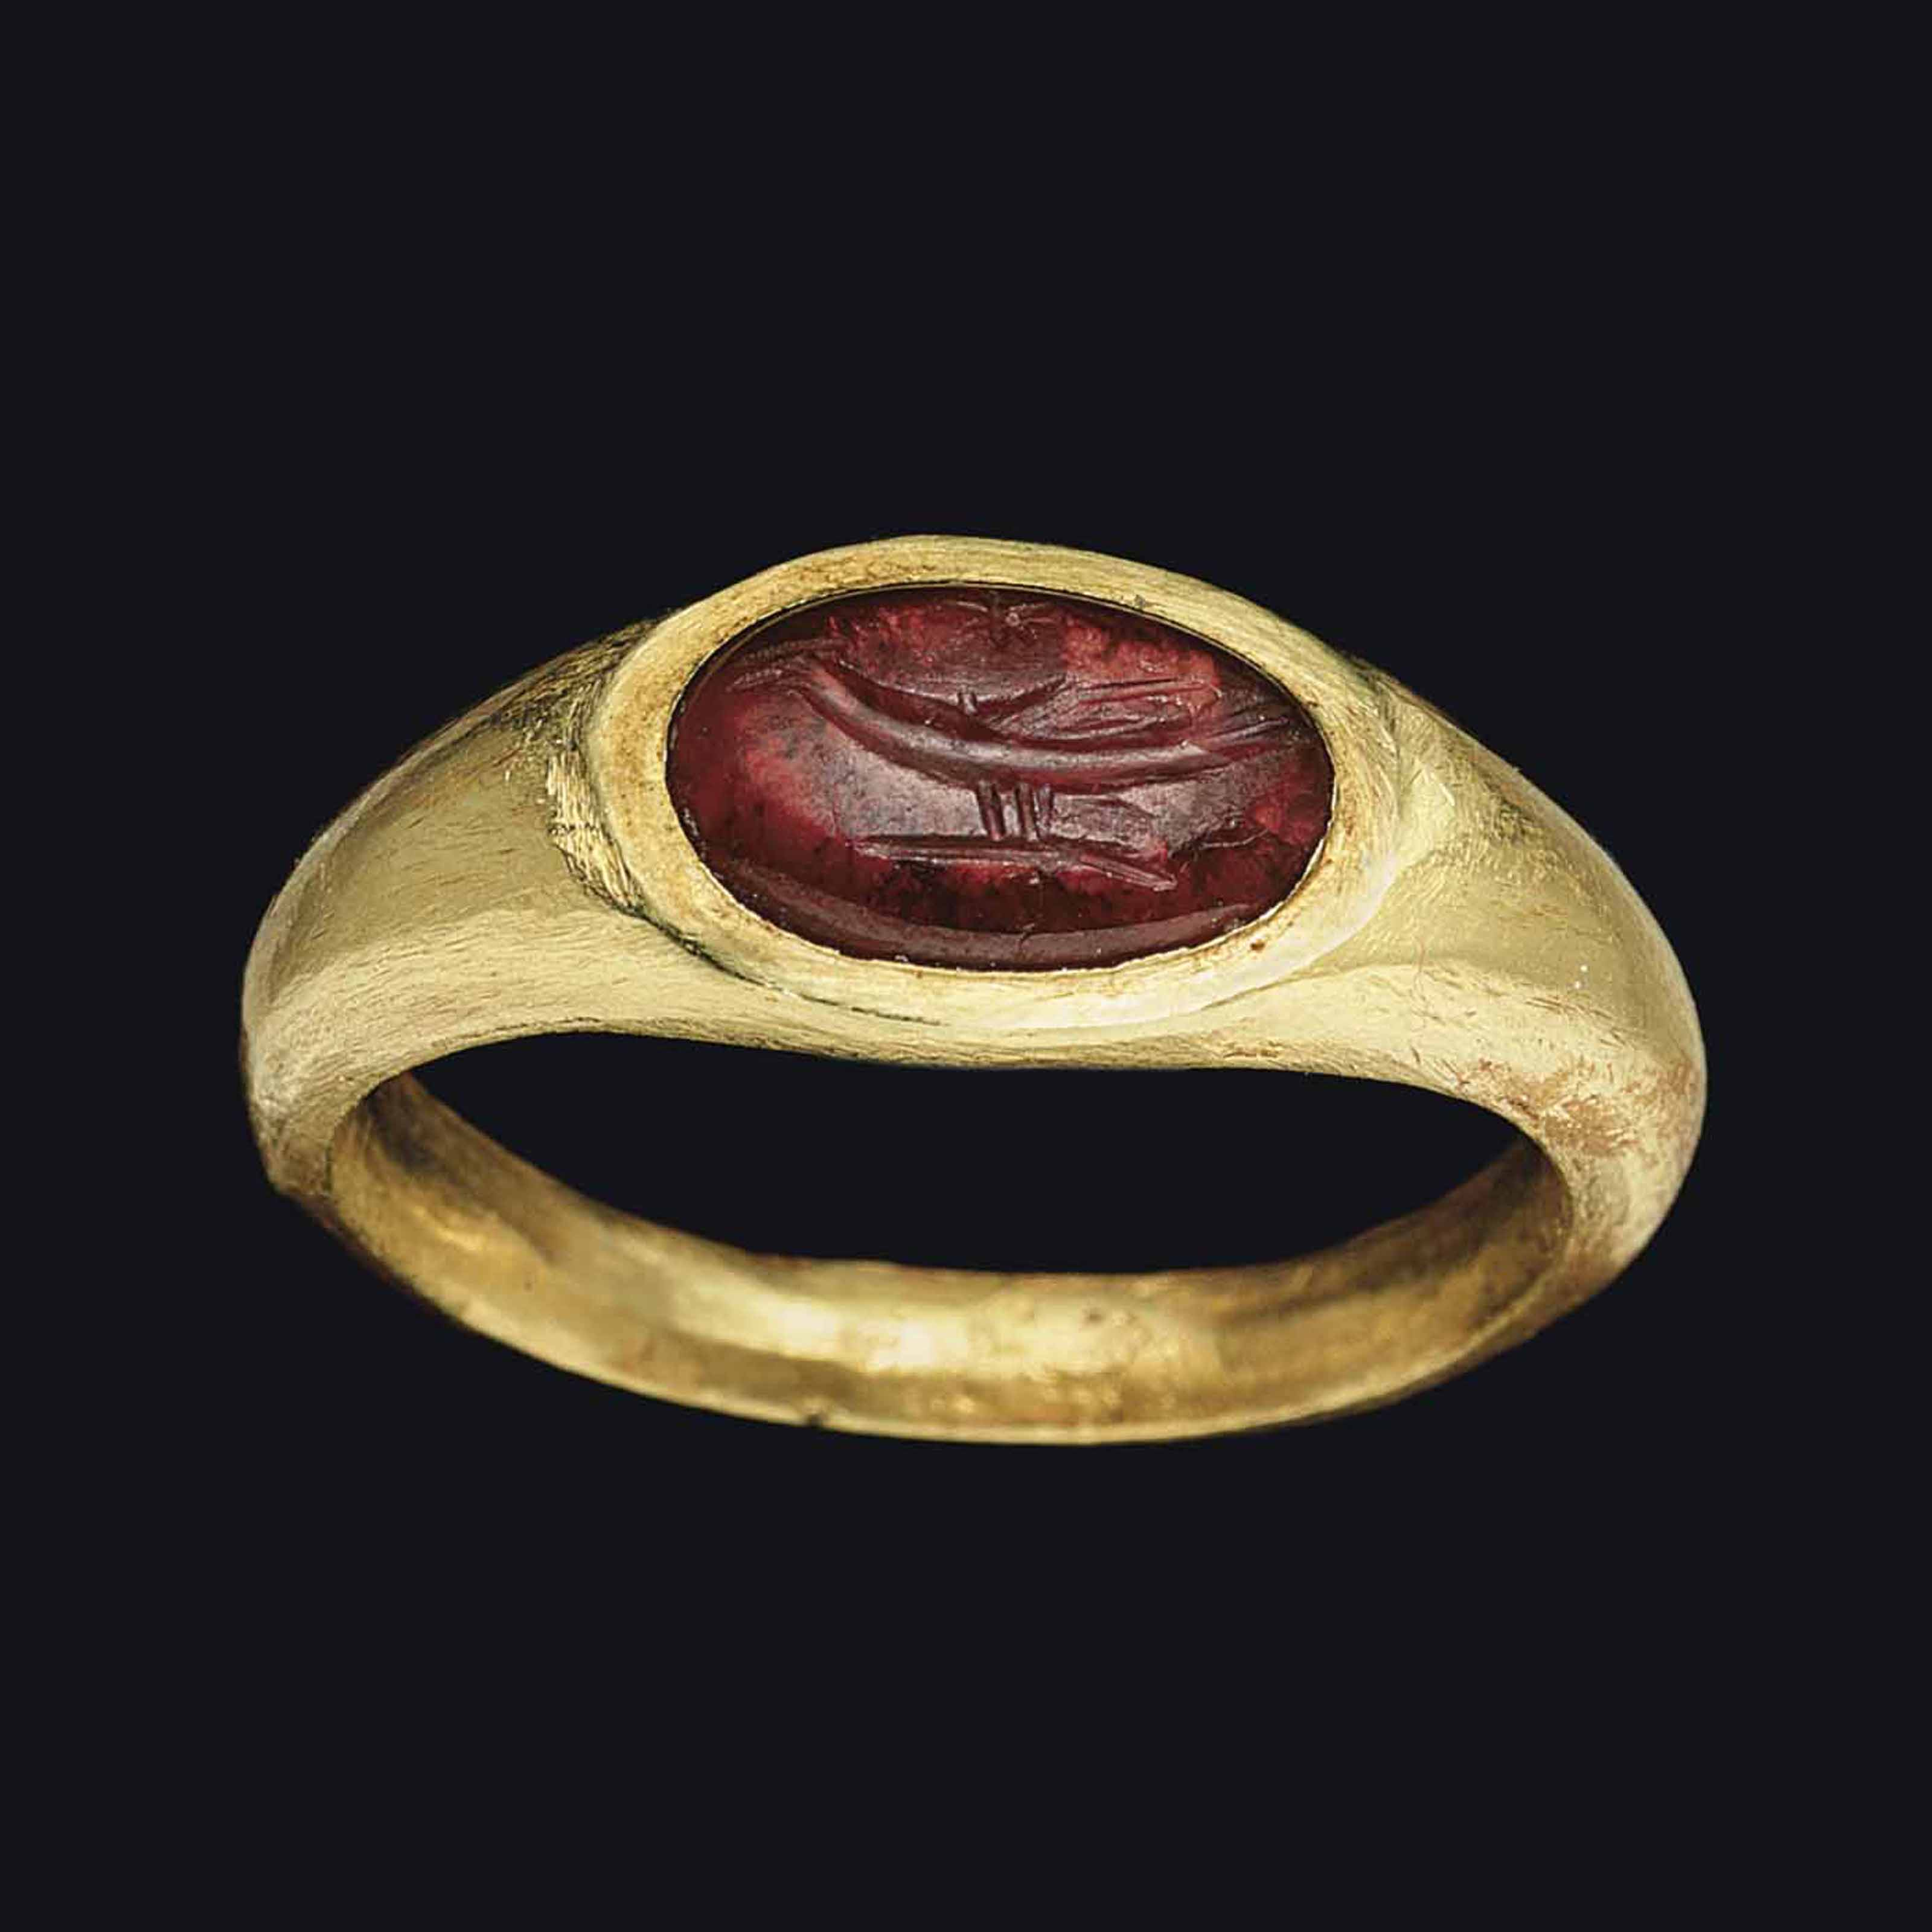 Ancient Roman Rings a roman gold and garnet finger ring | circa 2nd century a.d.